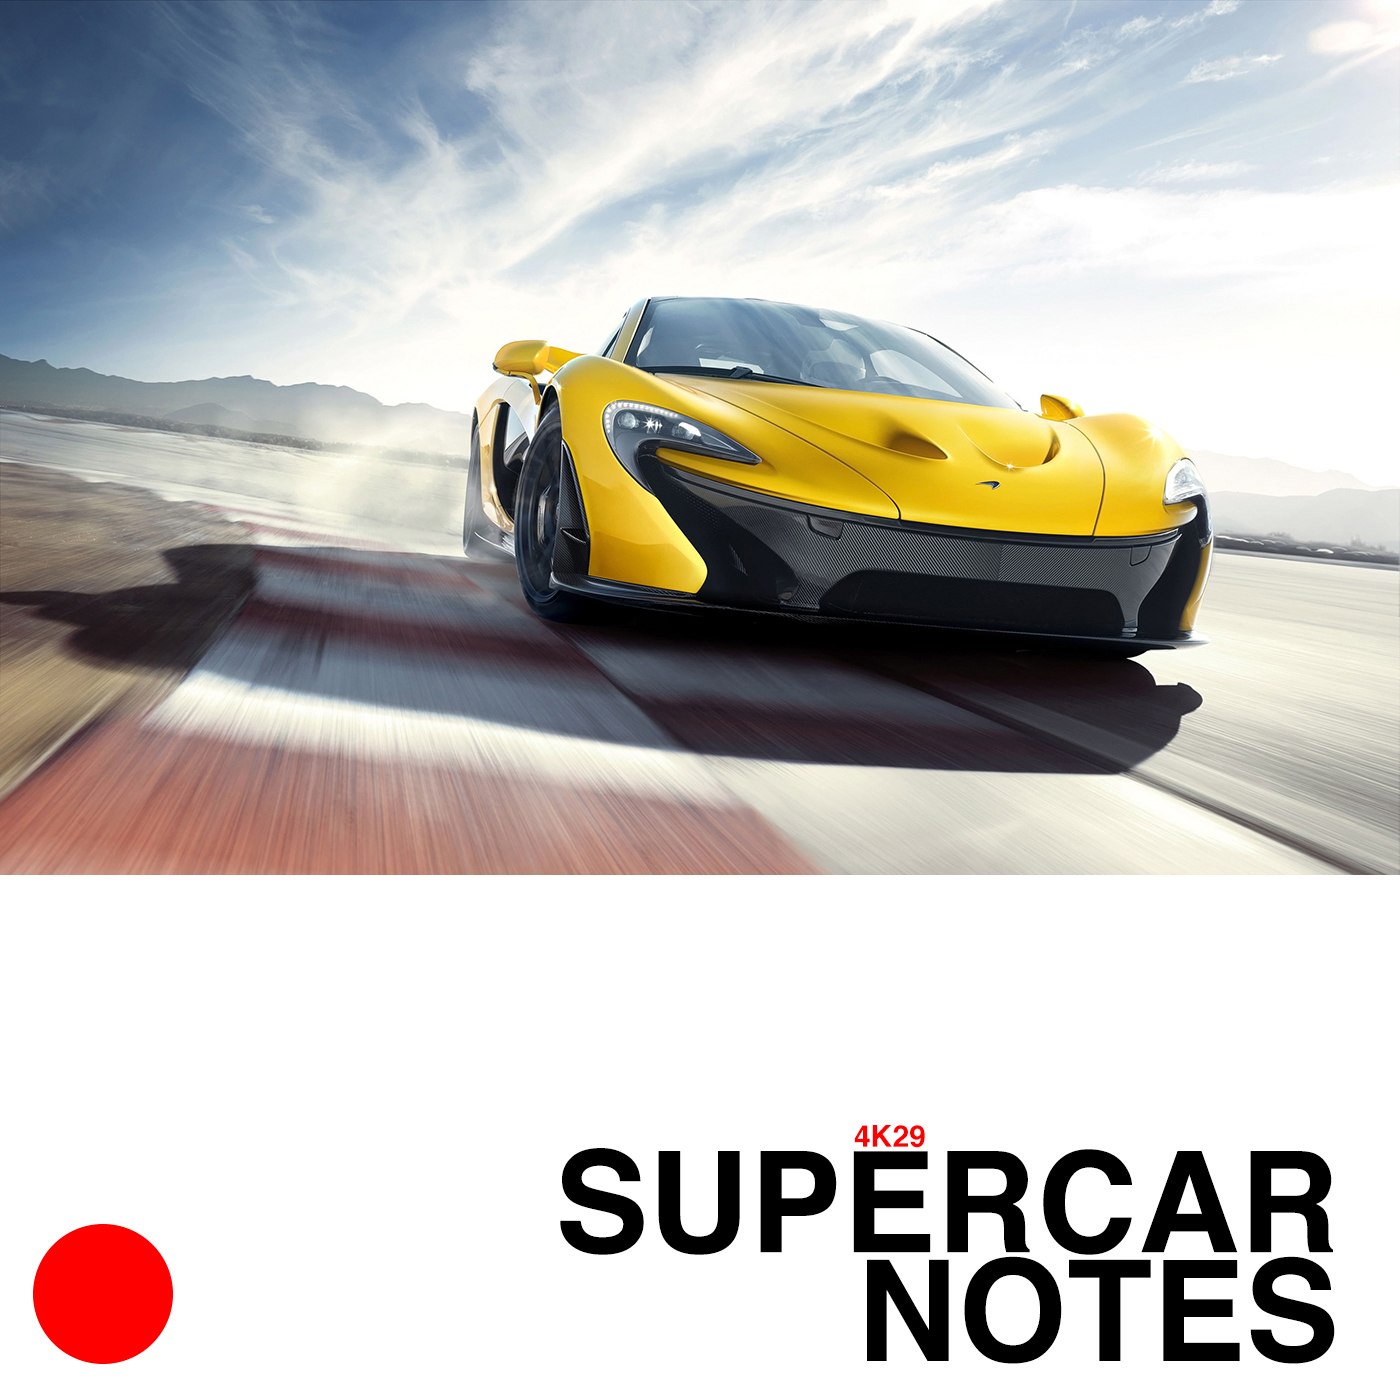 SUPERCAR NOTES 4K29